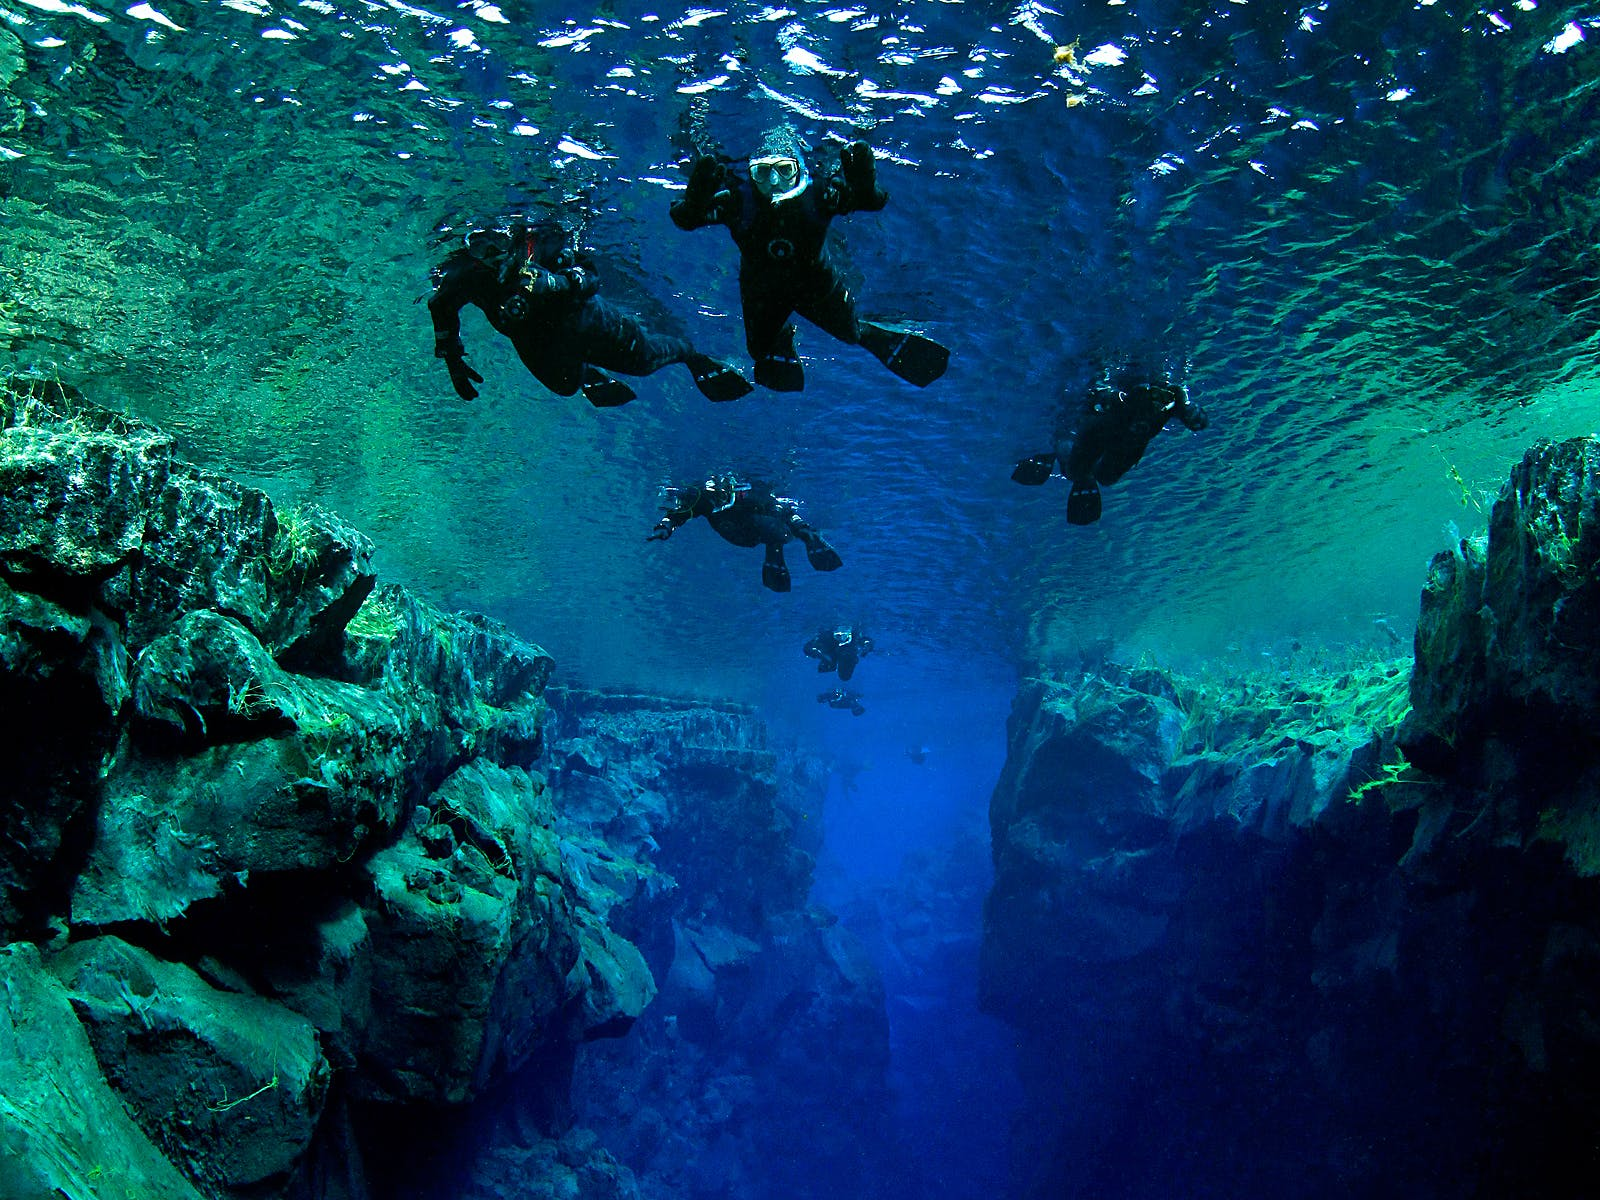 3 in 1 Bundled Discount Activity Tours with Volcano Caving, Snorkeling & Glacier Hiking - day 2